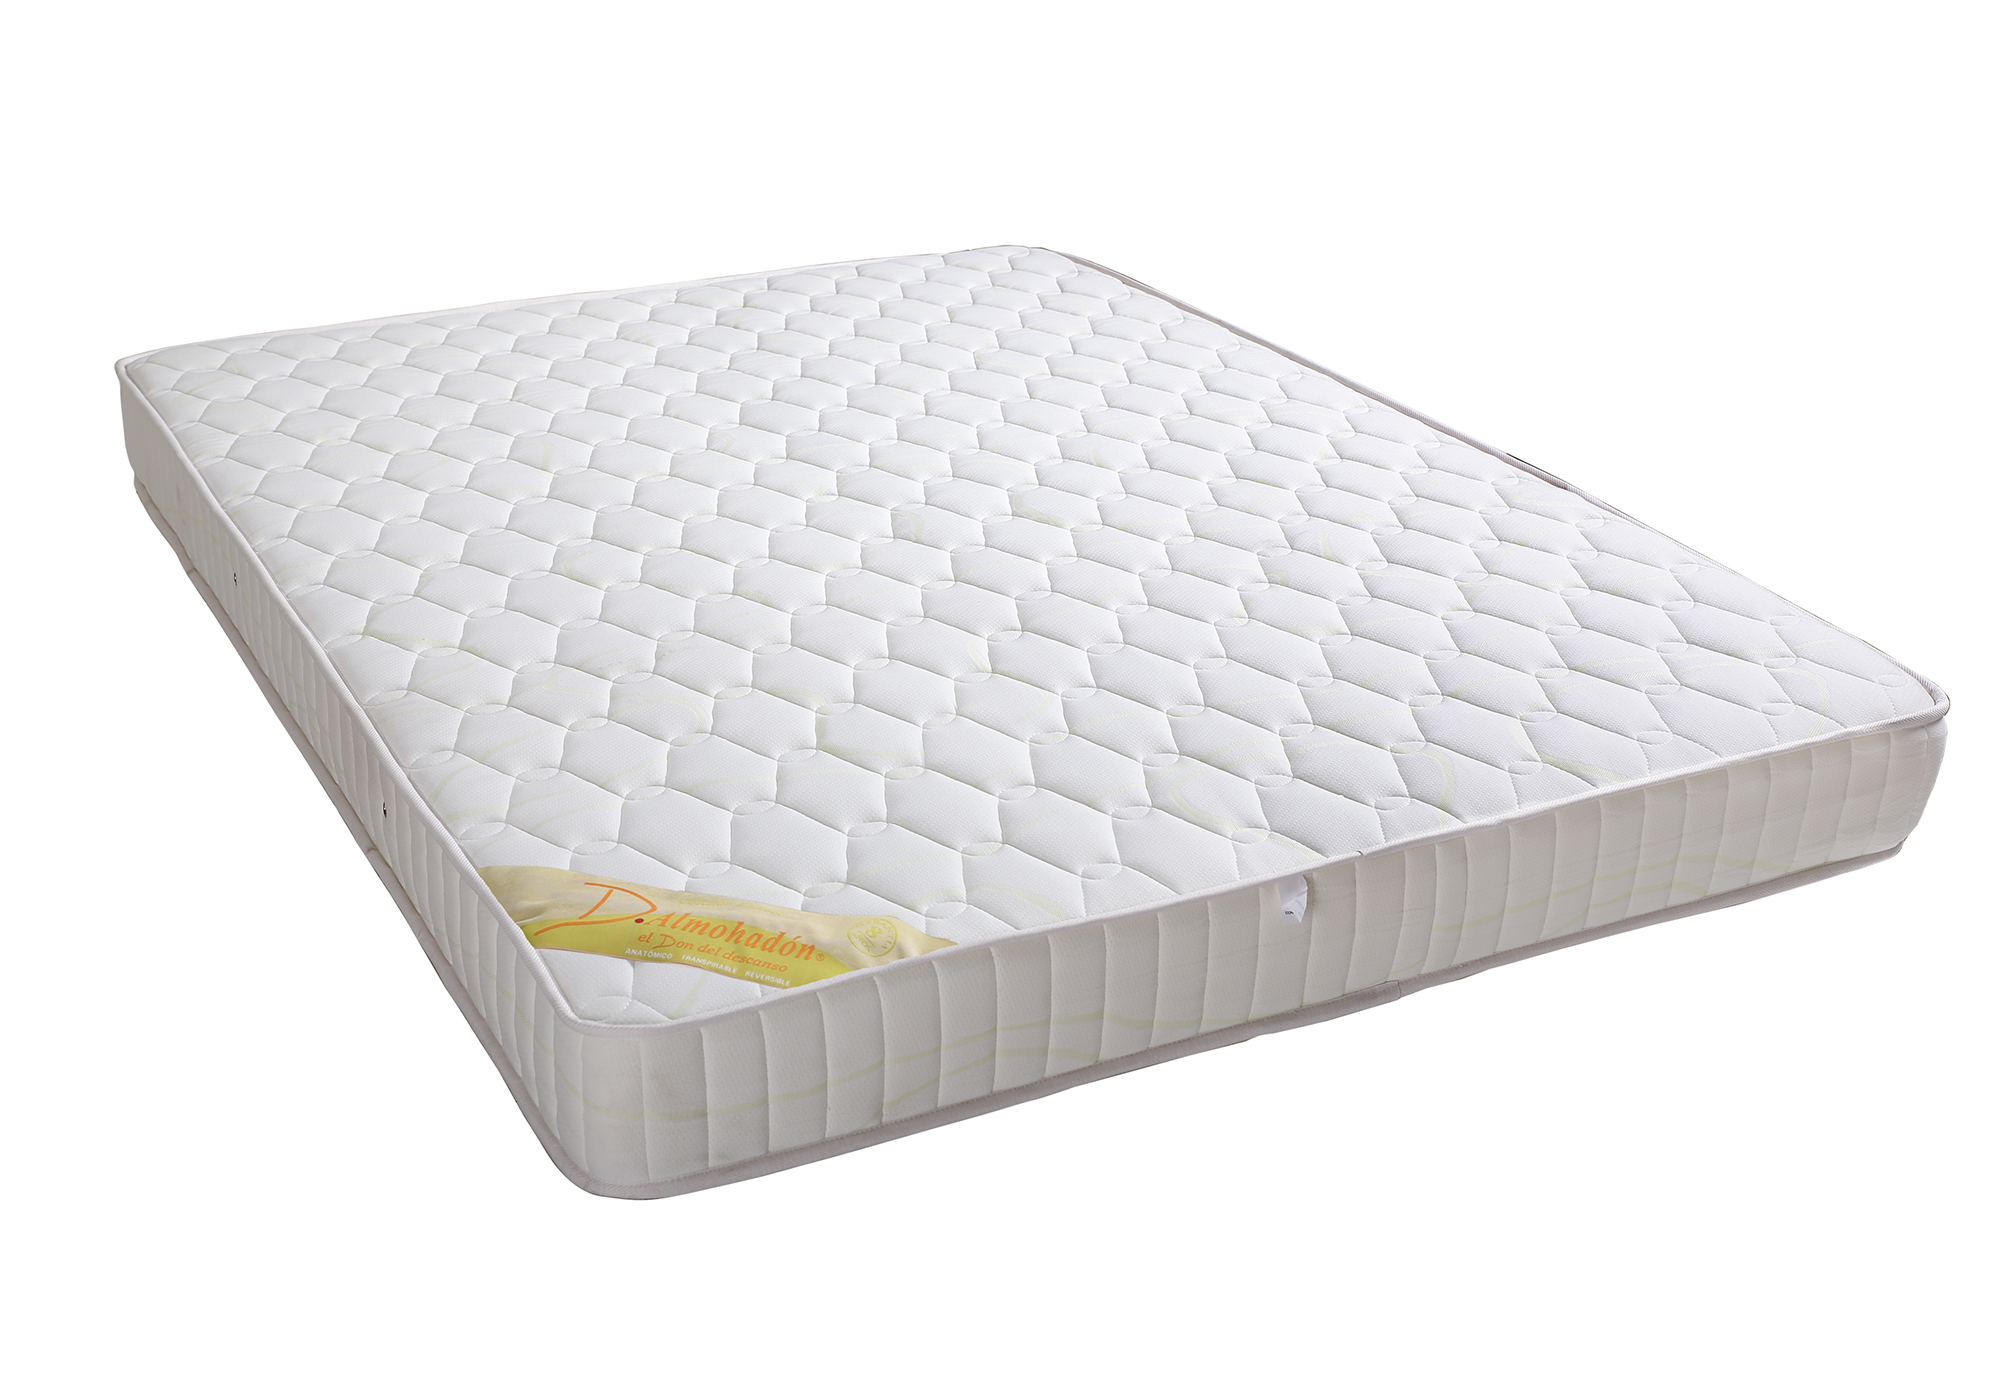 матраци don almohadon Mattress Eliocol   Don Almohadon матраци don almohadon